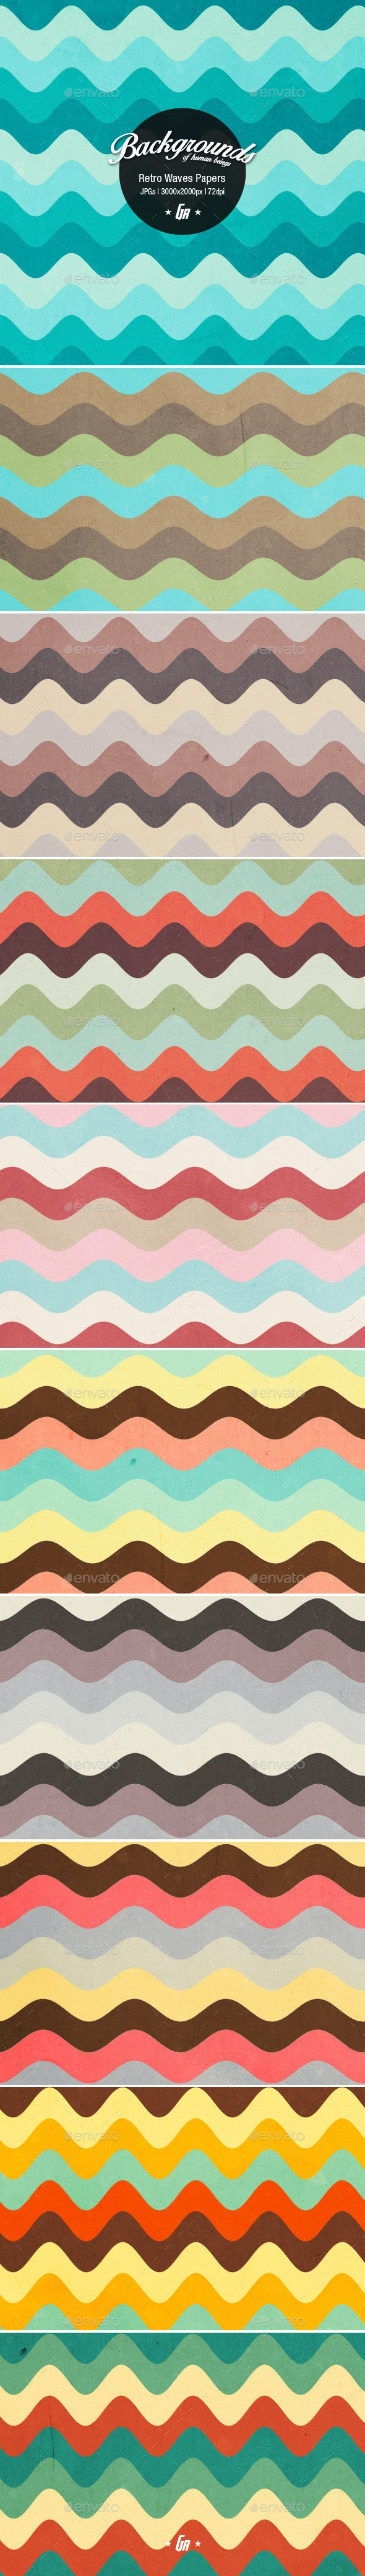 Retro Waves Paper Backgrounds - Patterns Backgrounds